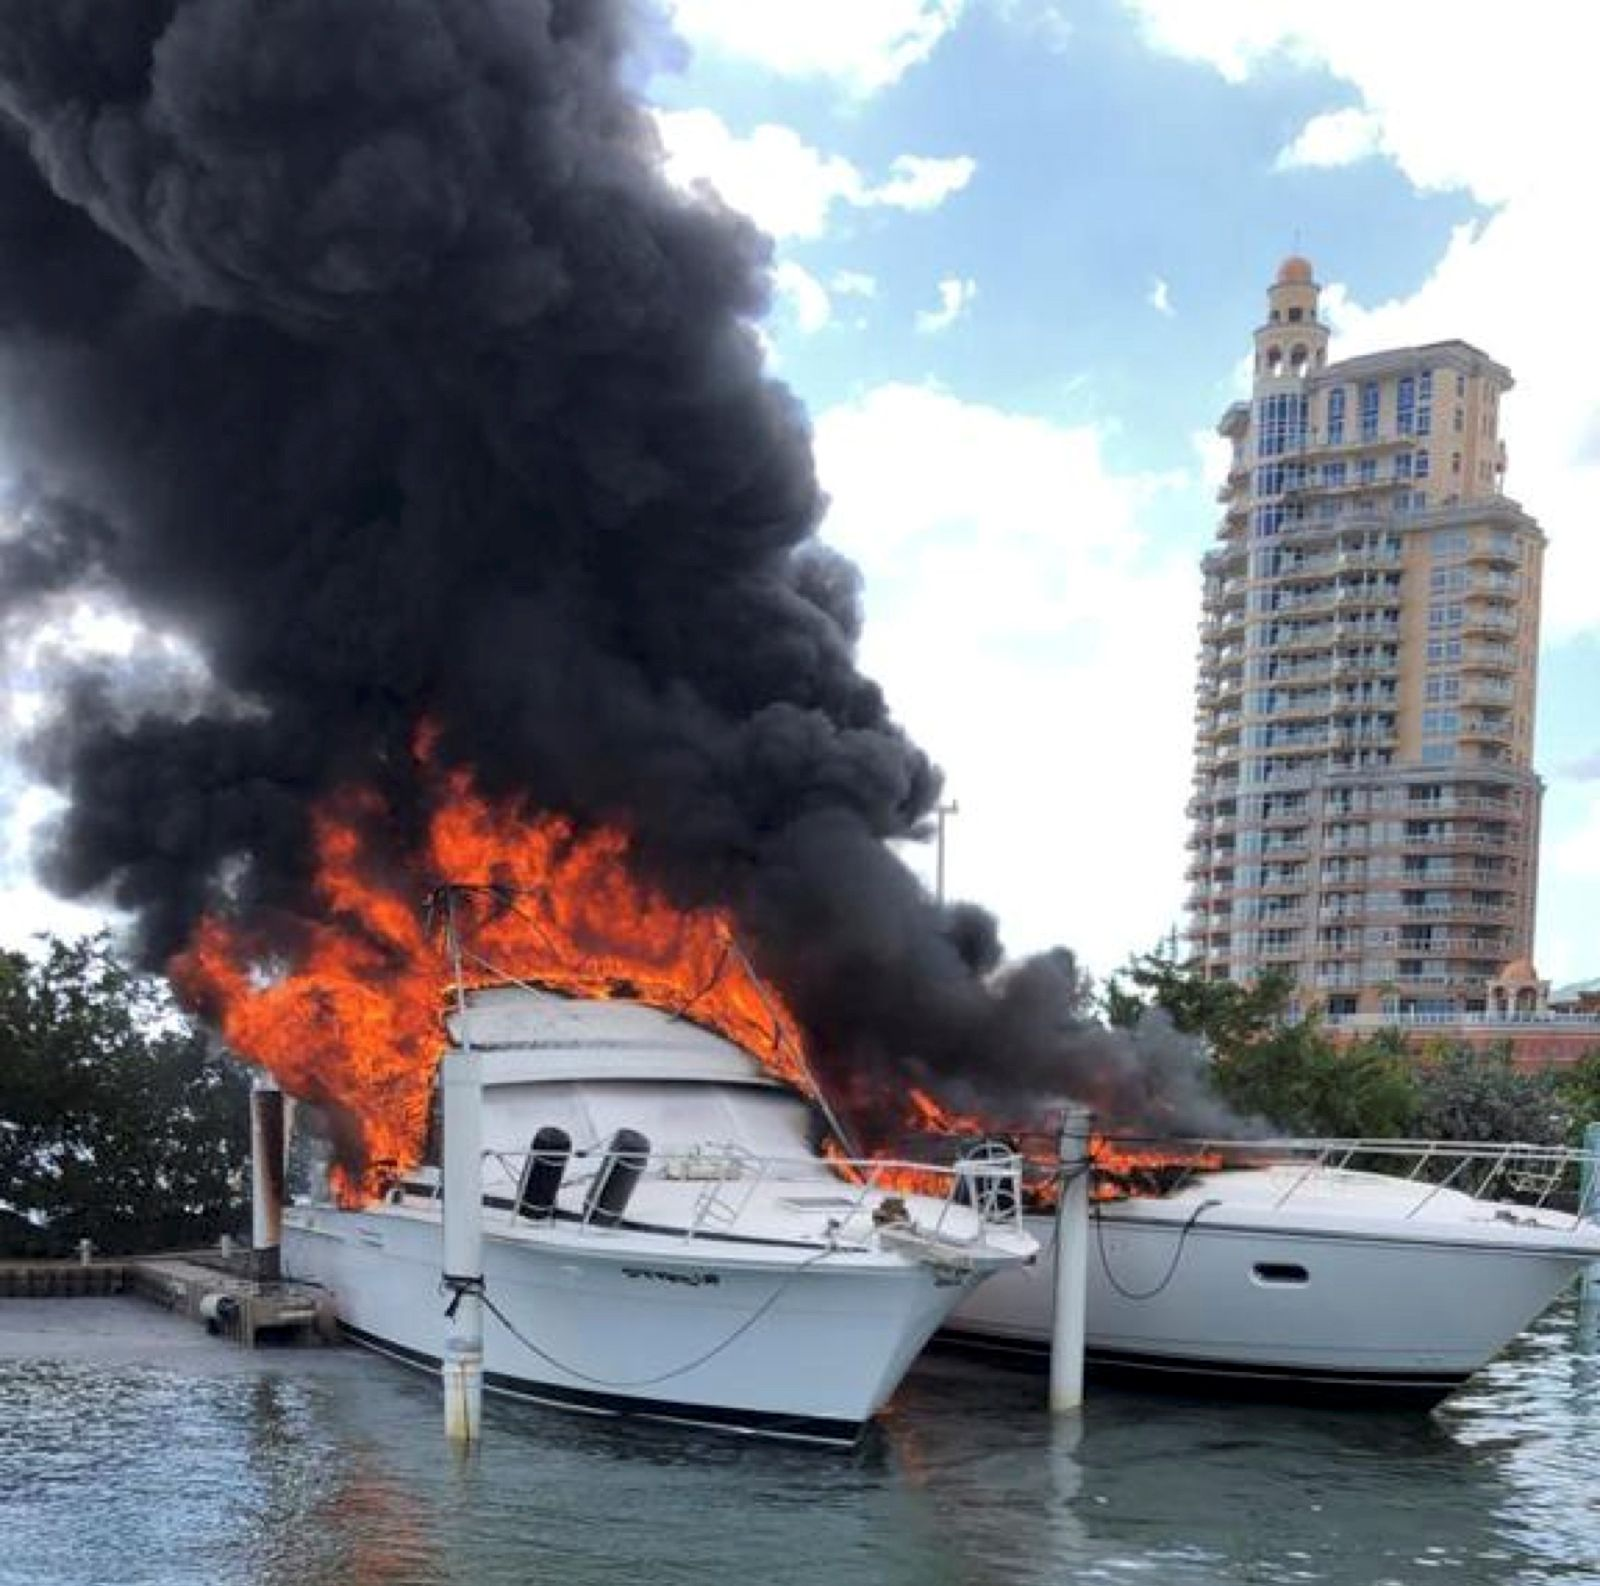 Million-dollar yachts destroyed by fire in Trinidad